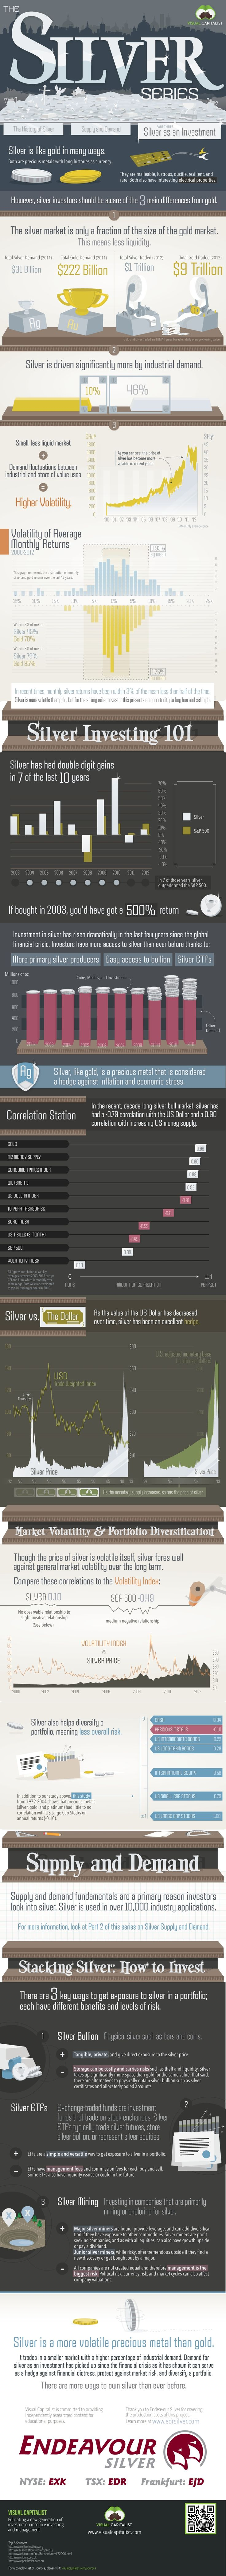 Silver has had double digit gains in 7 of the last 10 years.  In this infographic, we look at the investment properties of silver as well as its chief